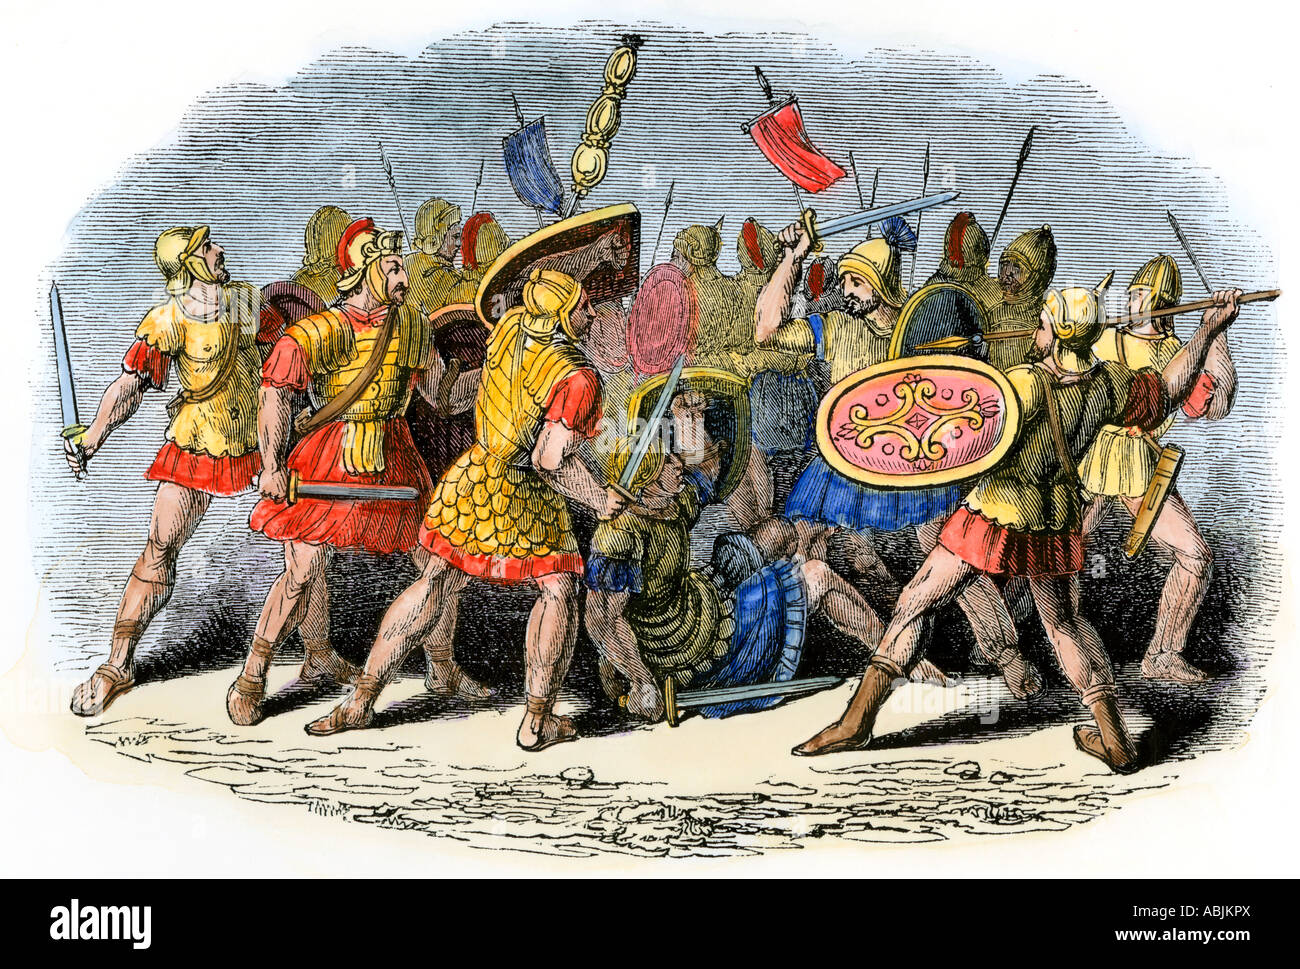 Roman Soldiers Battle High Resolution Stock Photography and Images - Alamy